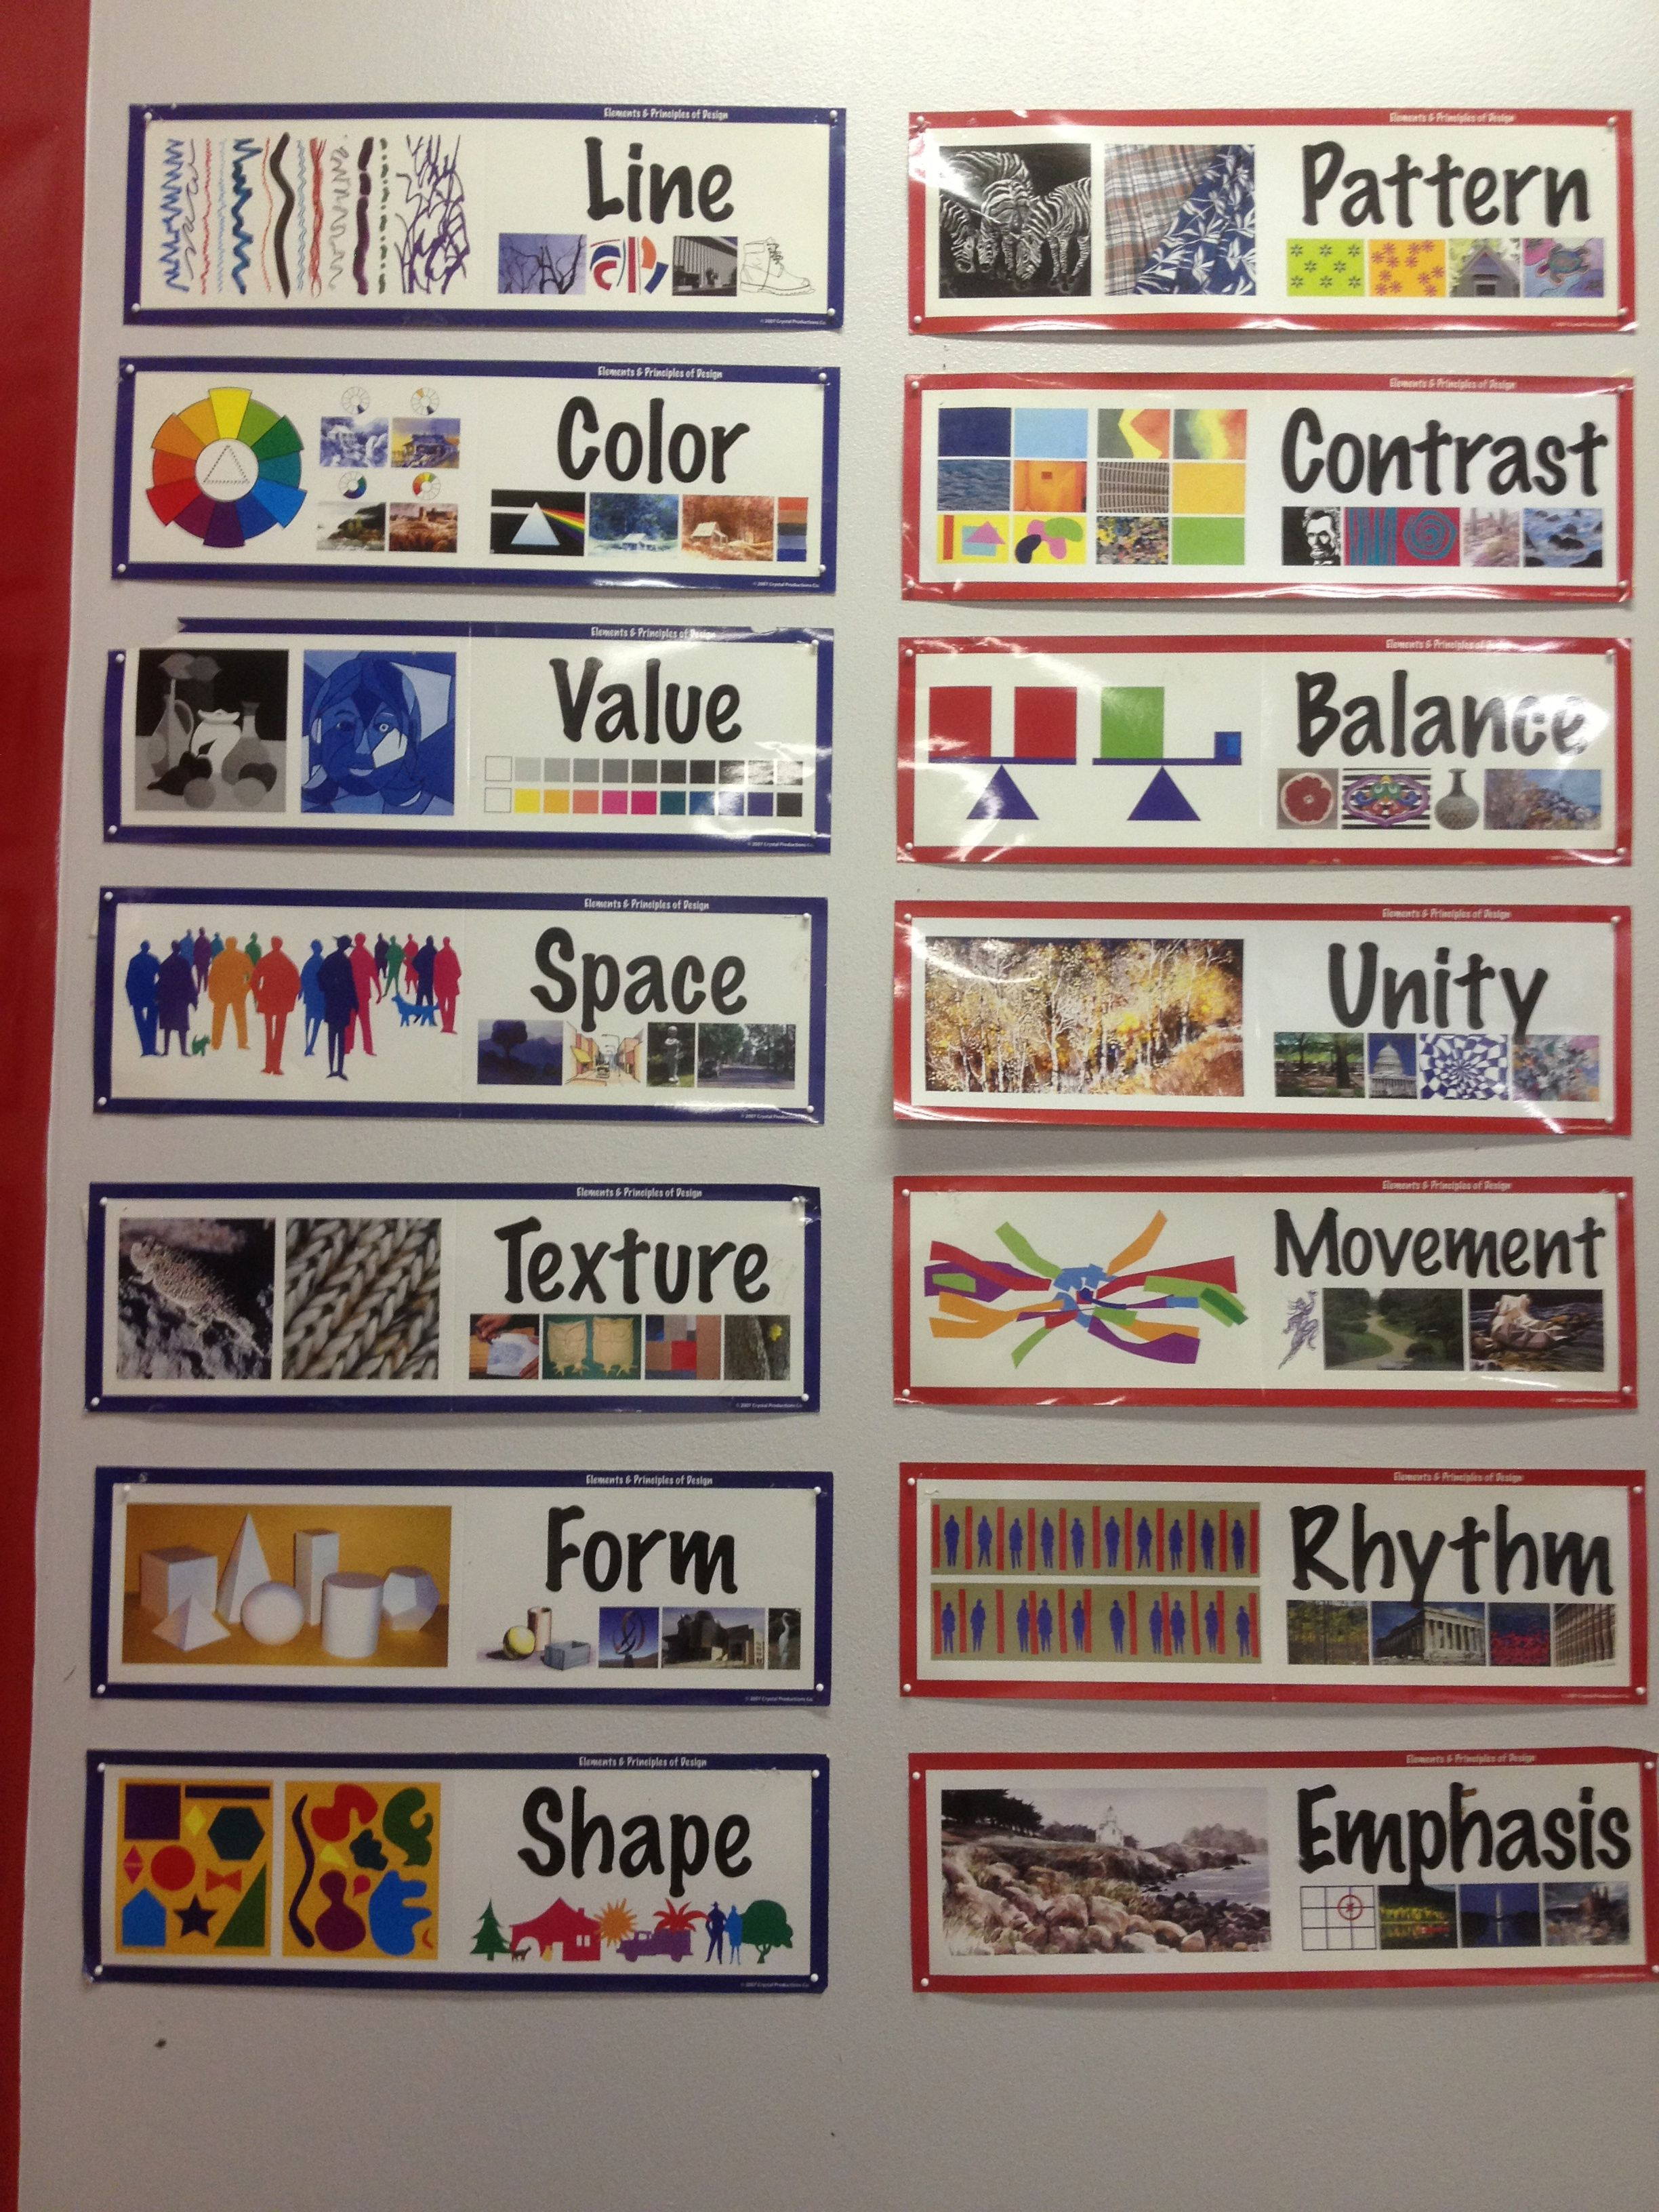 The Principles And Elements Of Art Posters Nicely Displayed Within The Art Room Space Be Sure